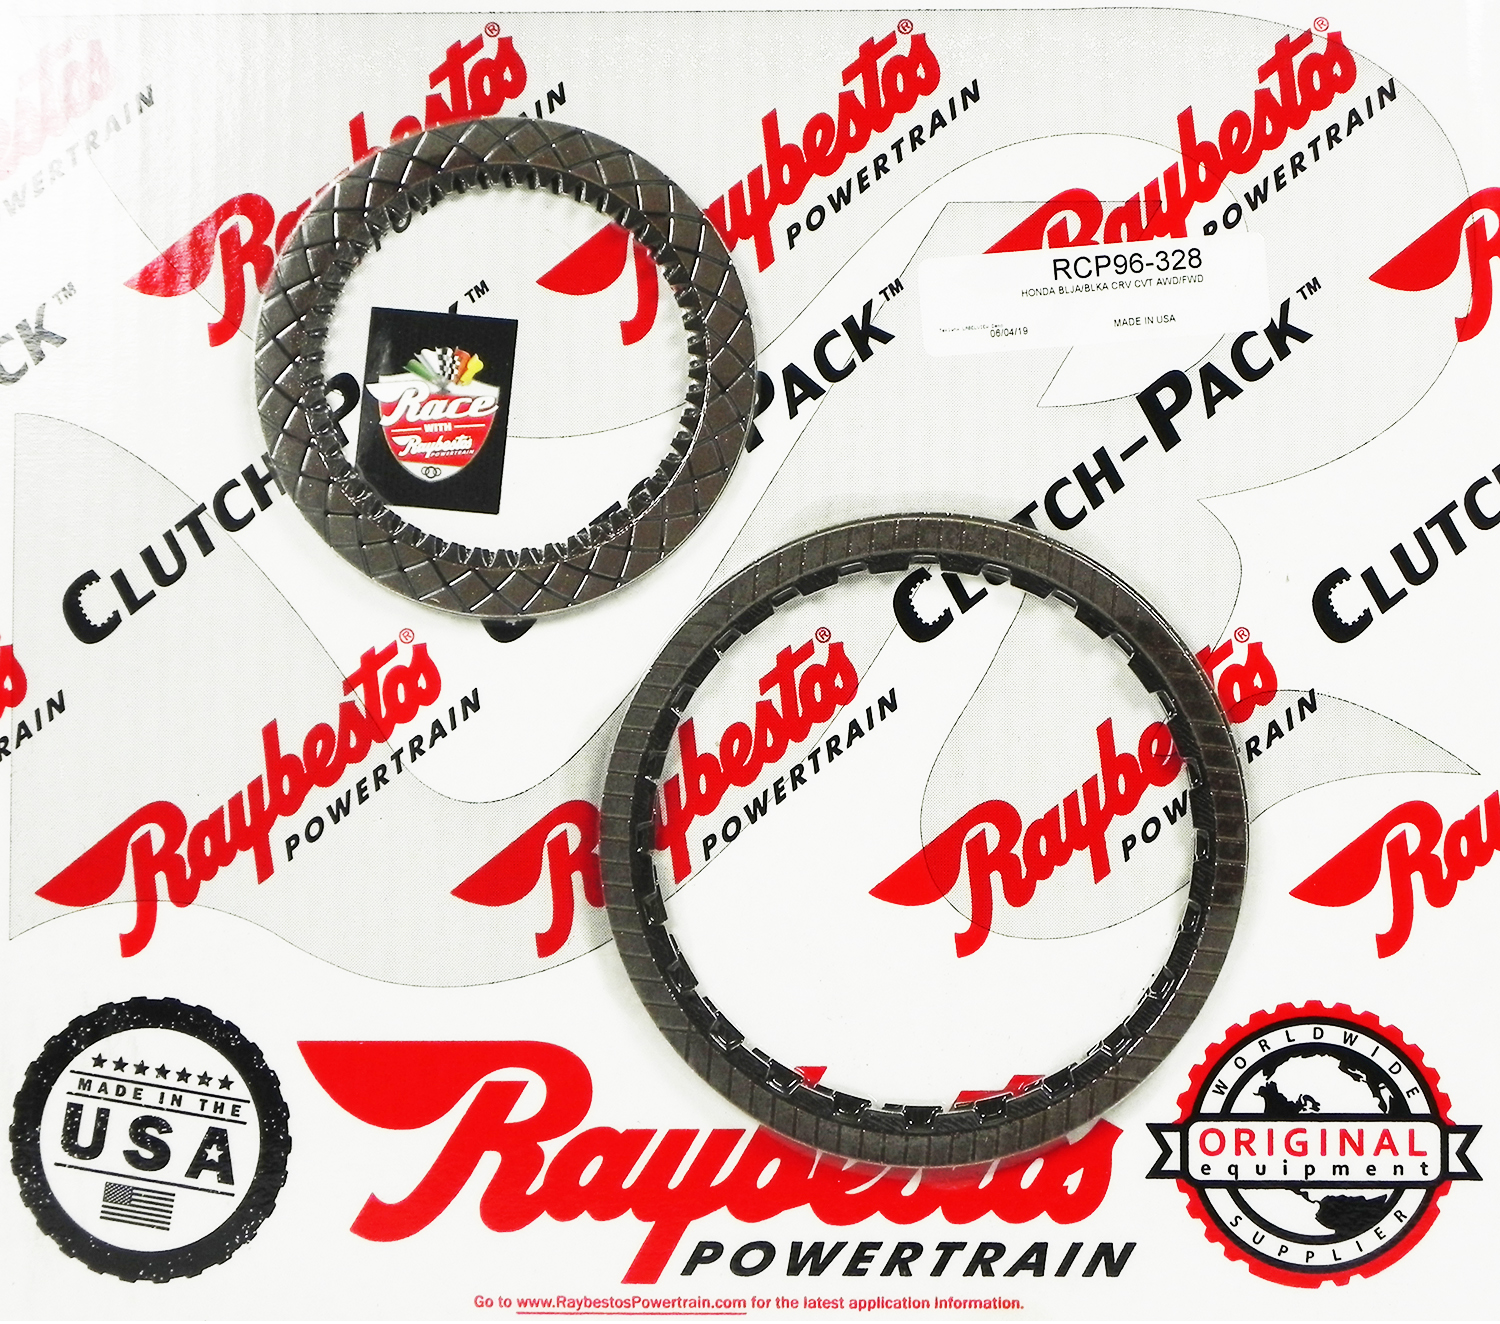 BLJA, BLKA CVT 5 SPEED GPX Friction Clutch Pack